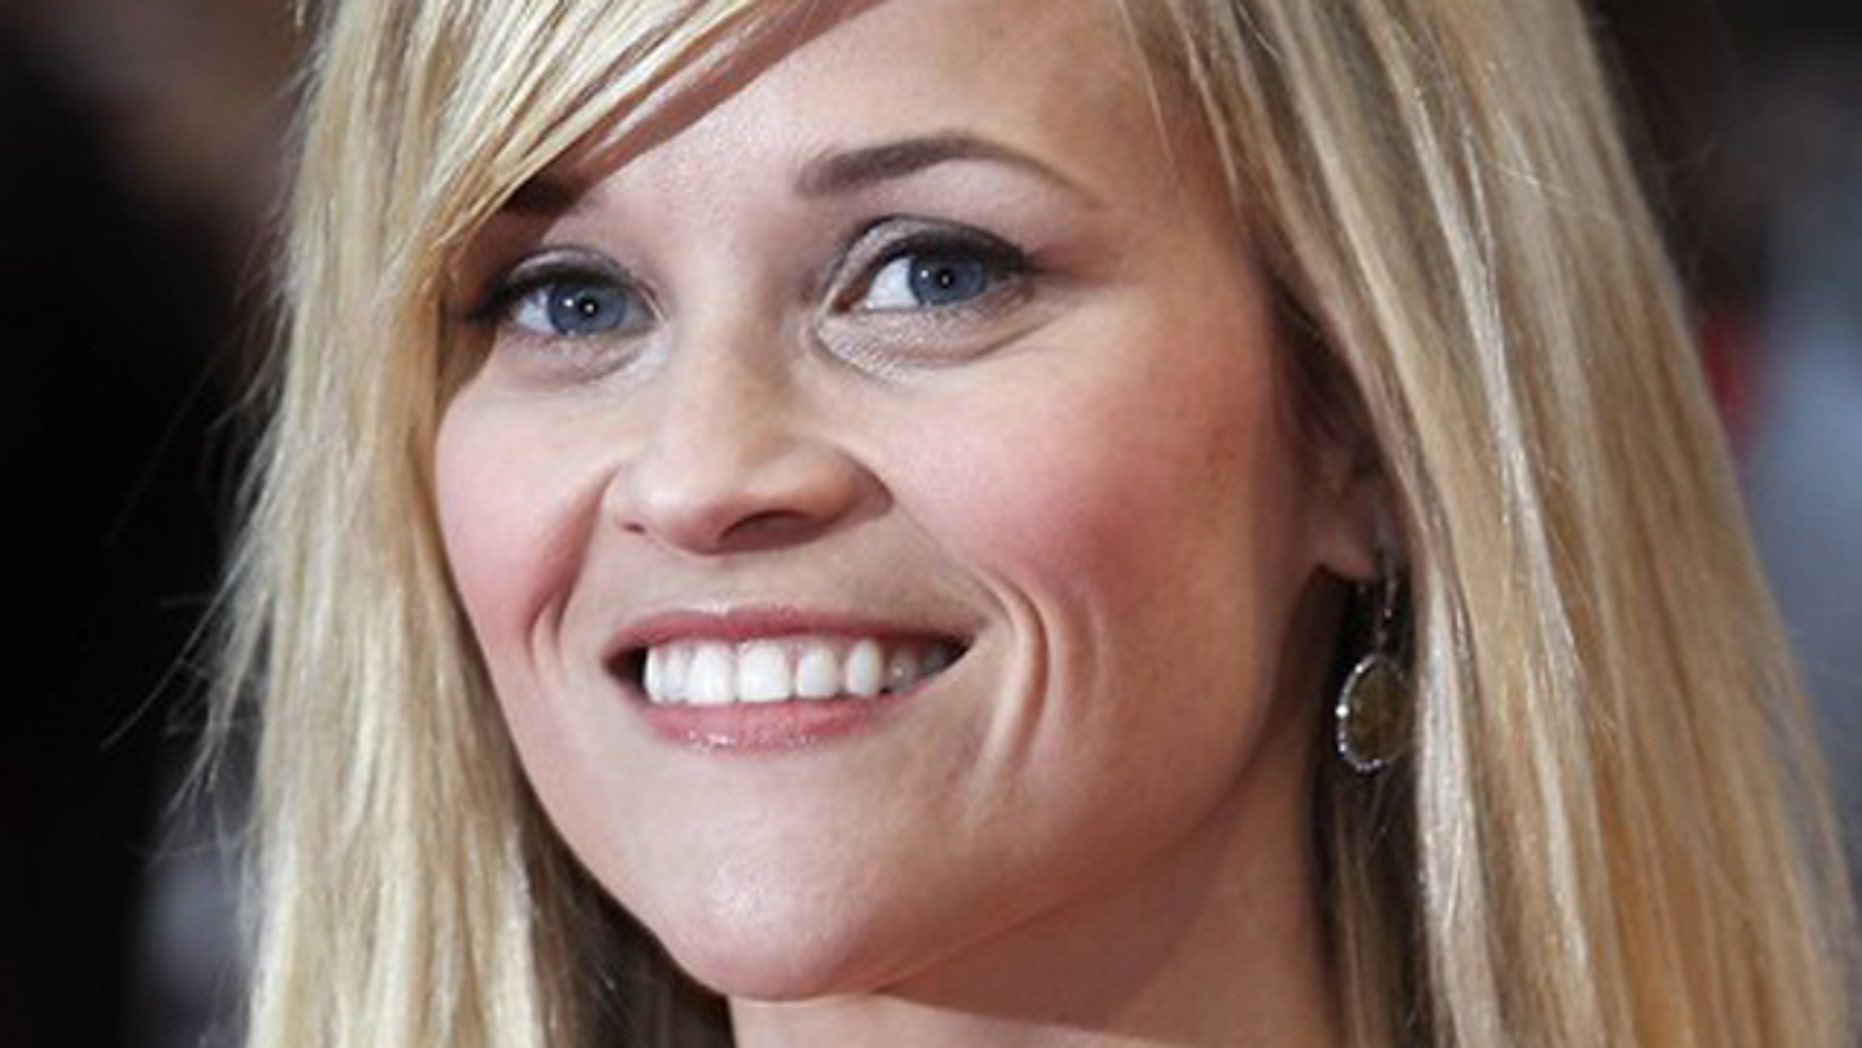 Actress Reese Witherspoon poses for photographers at the premiere of Water for Elephants at the Westfield, in London May 3, 2011.